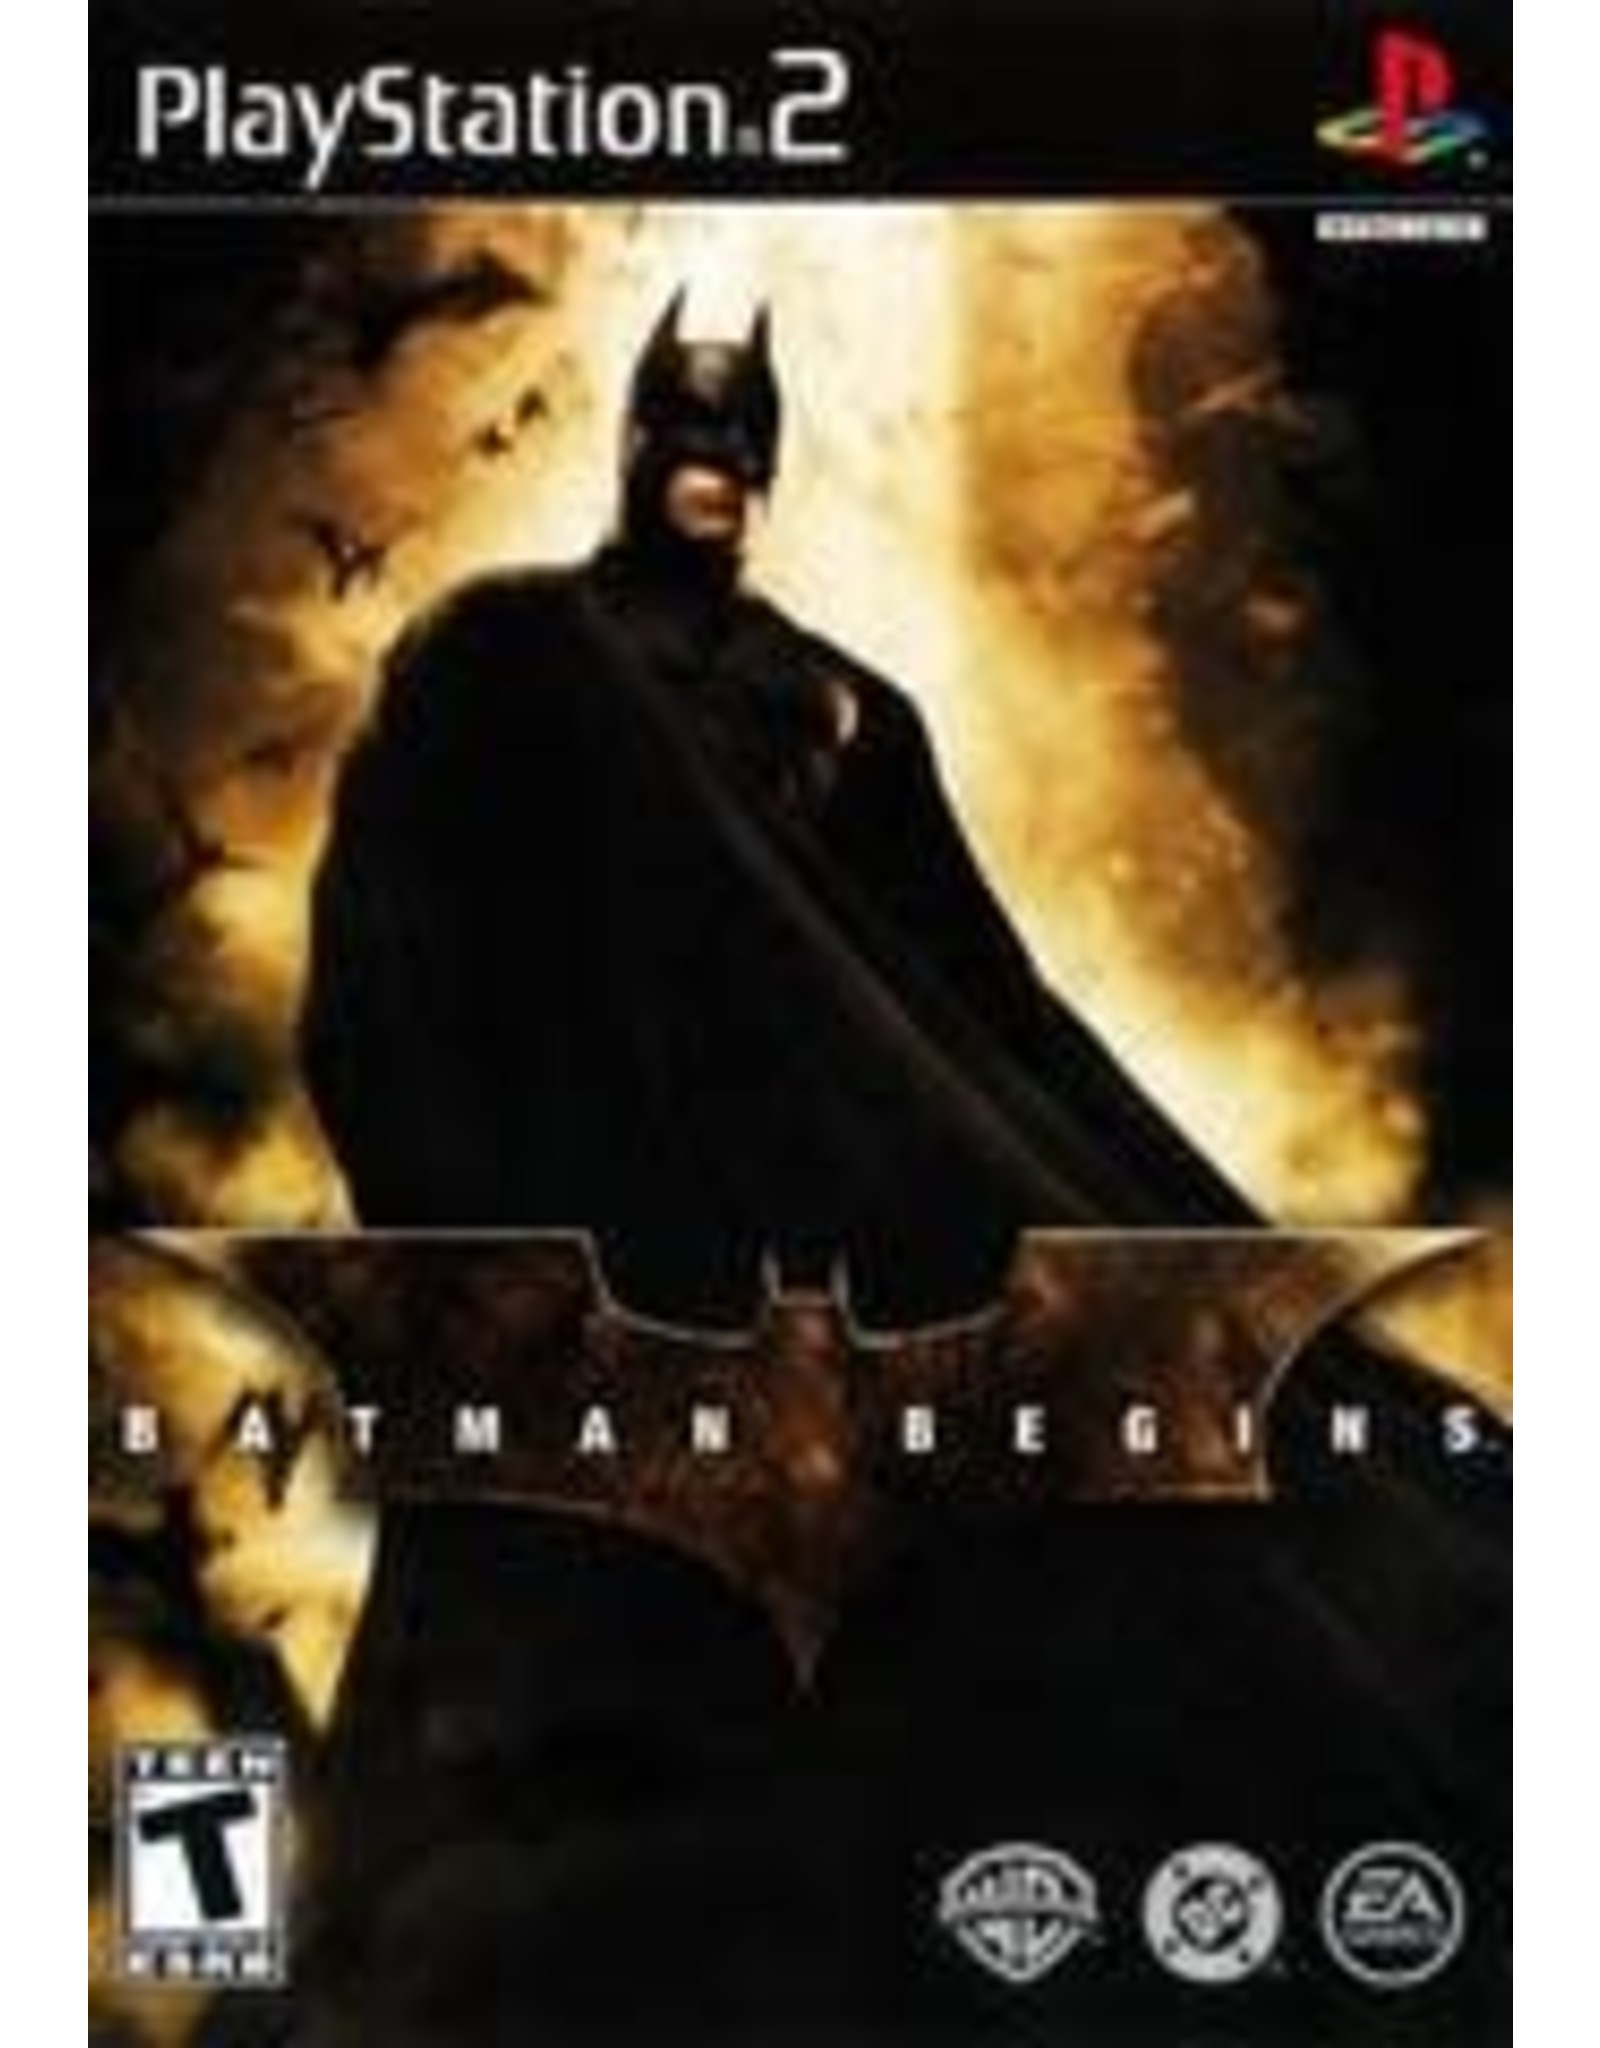 Playstation 2 Batman Begins (CiB)